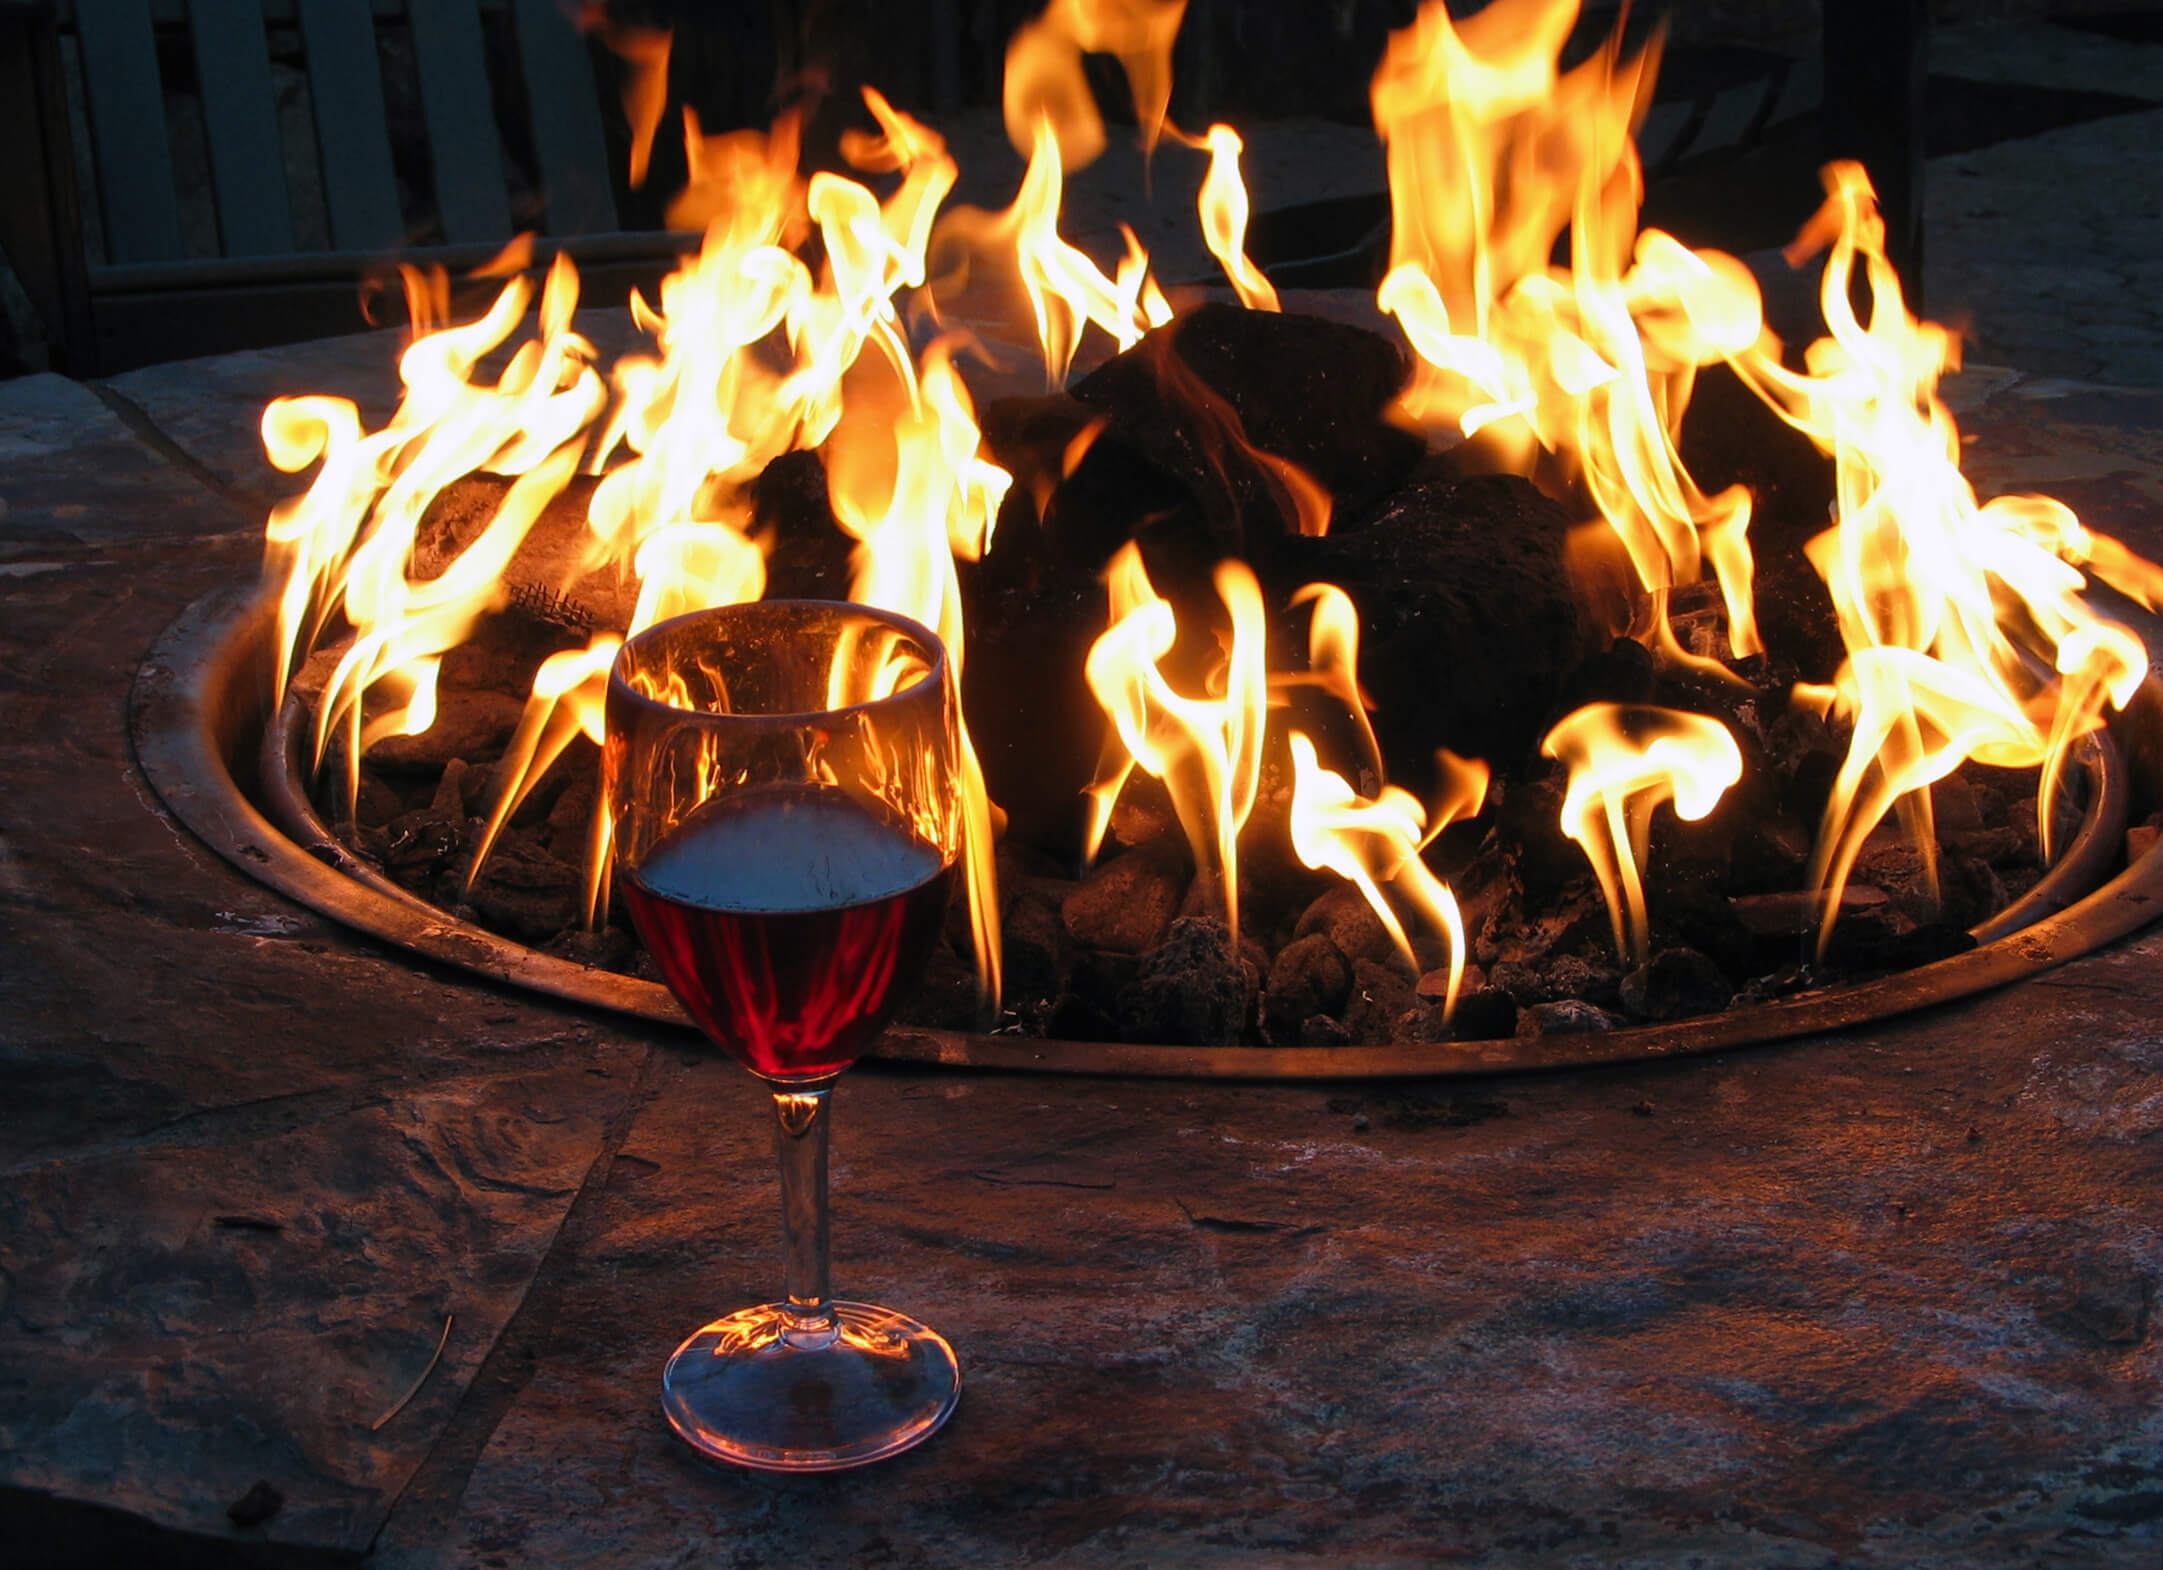 Wine glass by outdoor fire pit